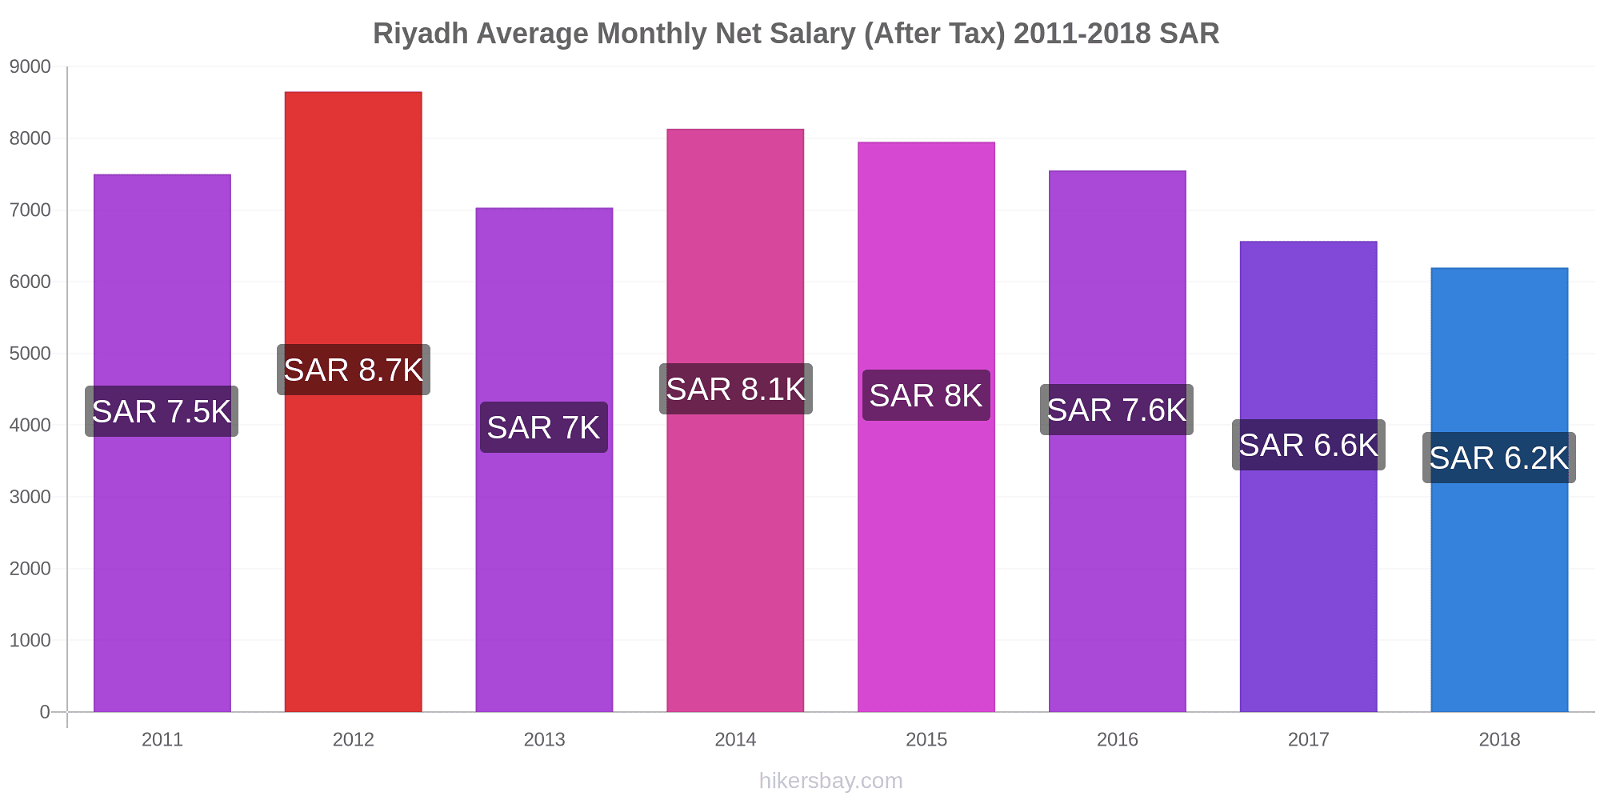 Riyadh price changes Average Monthly Net Salary (After Tax) hikersbay.com